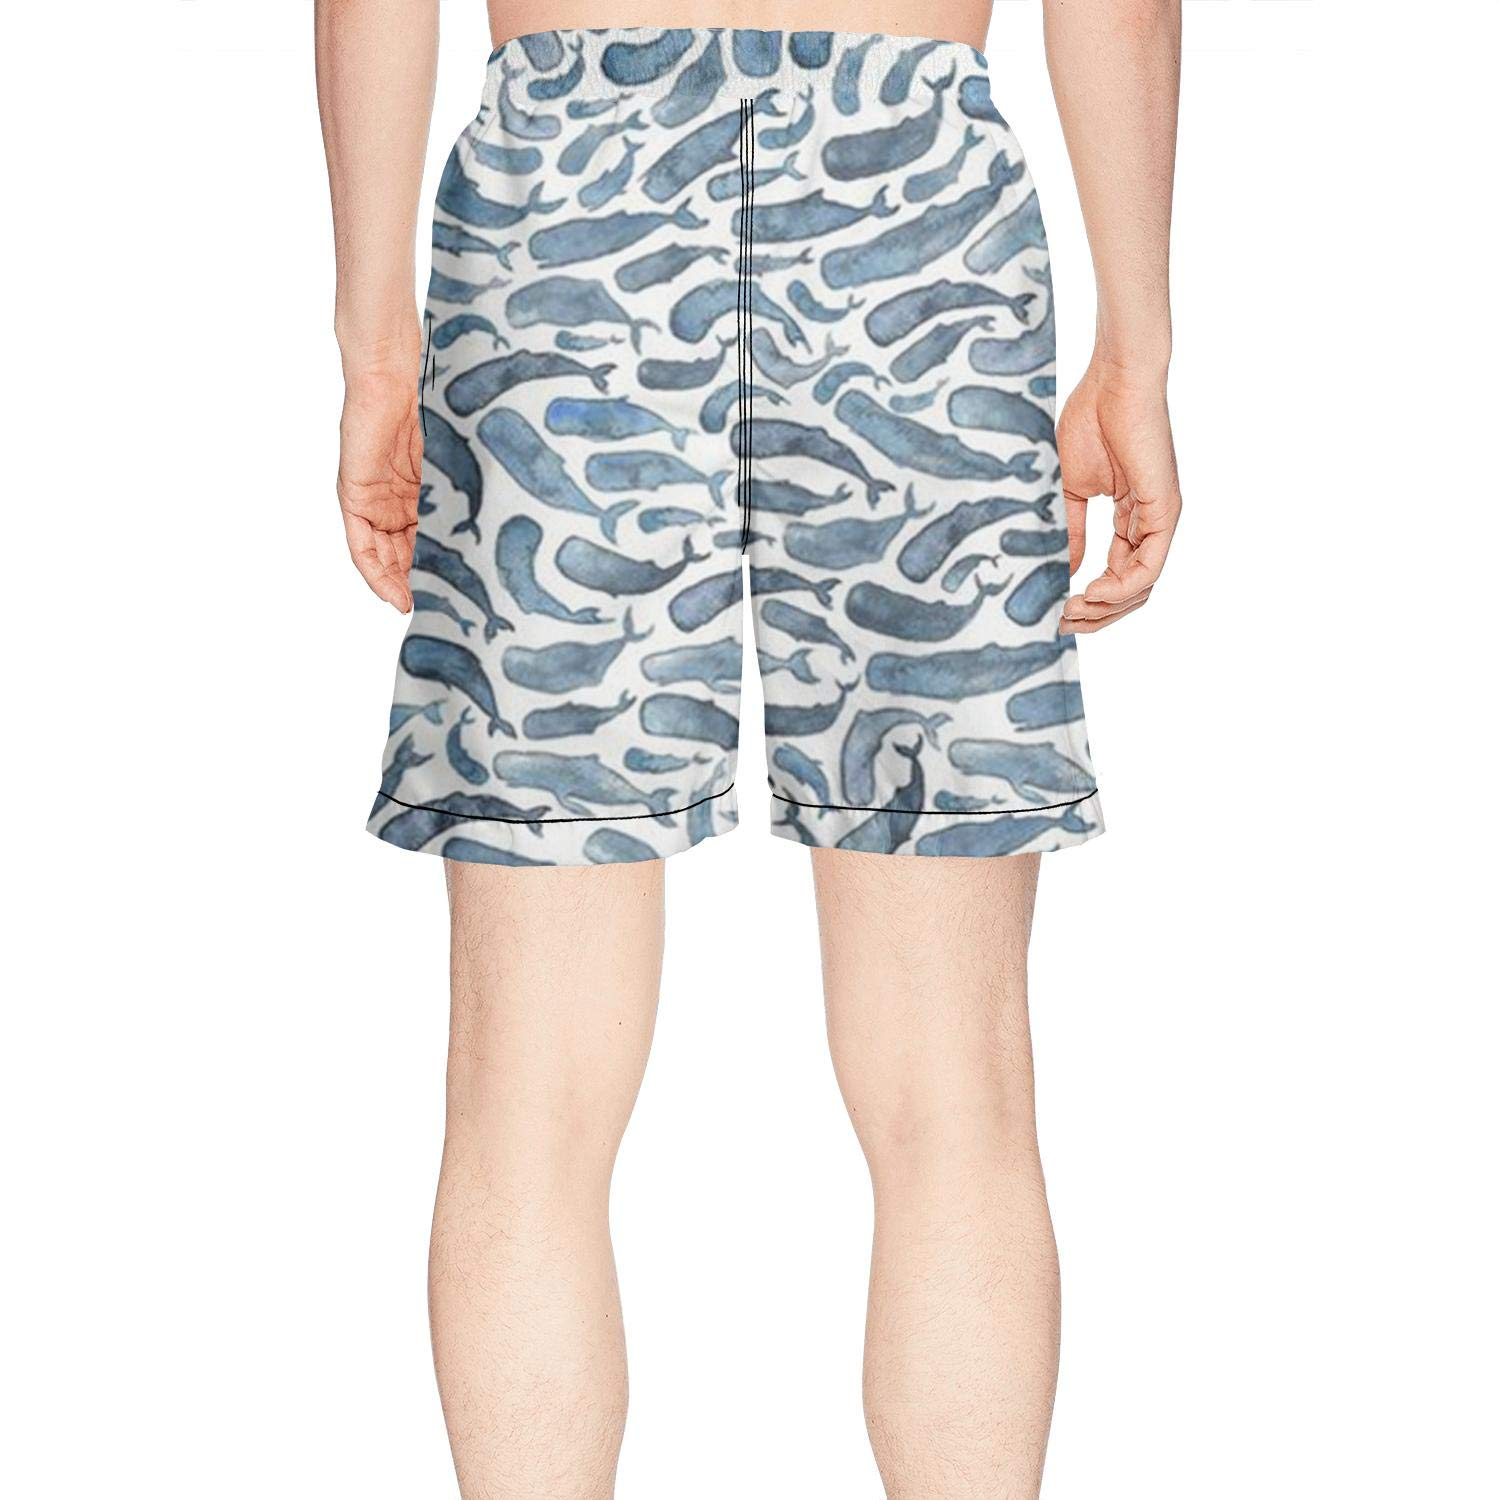 XULANG Mens for The Love of Whale Swim Trunks Jogging Skate Knee Length Boardshorts by XULANG (Image #2)